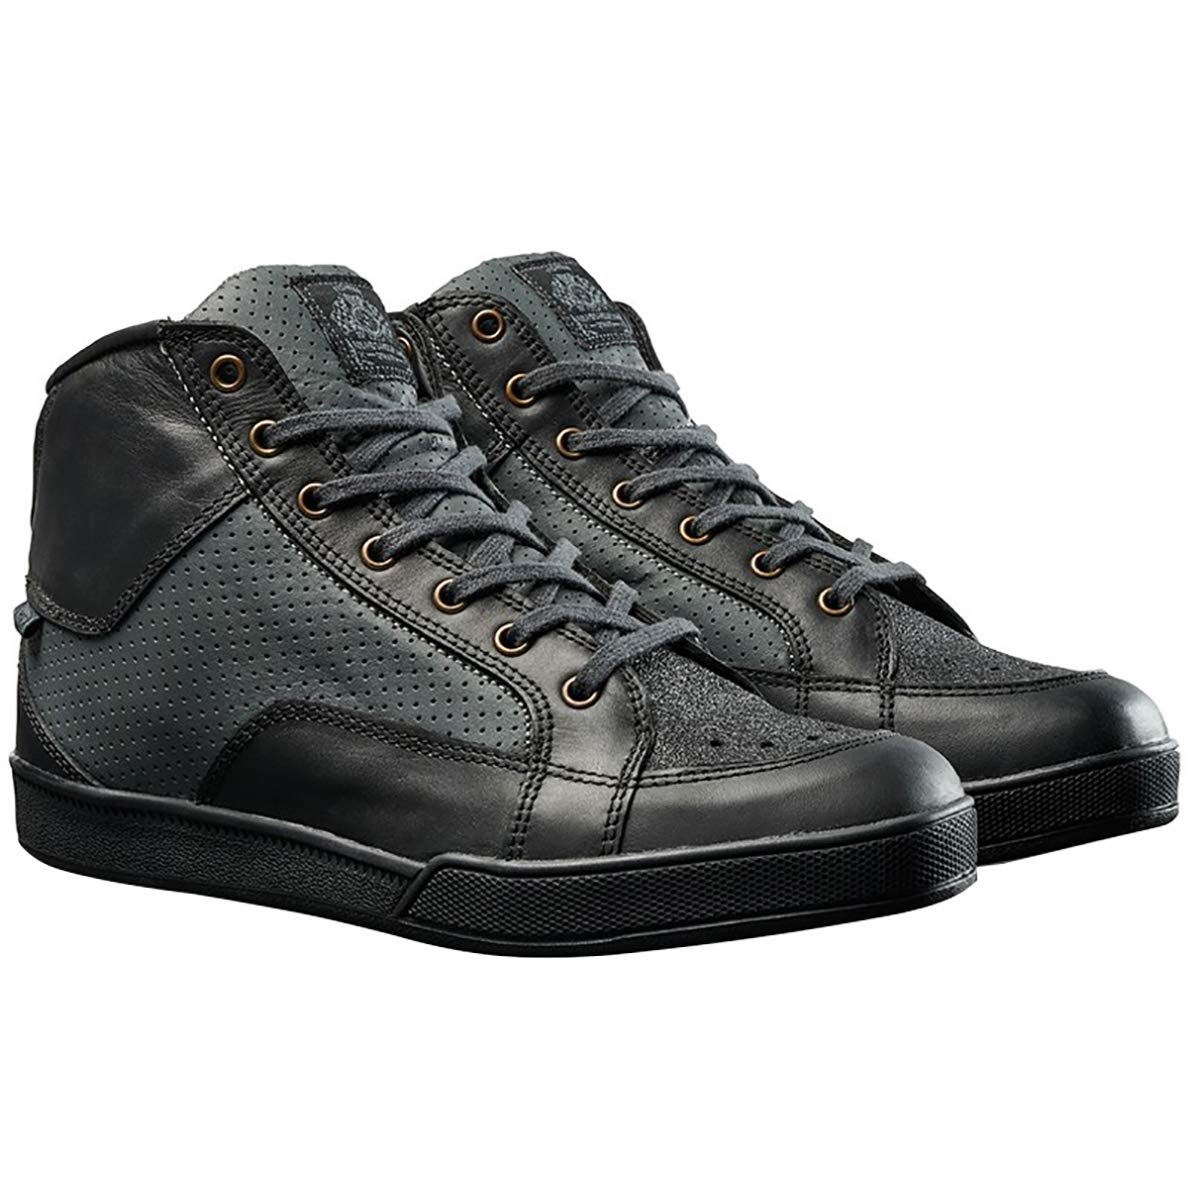 Roland Sands Design Fresno Perforated Men's Street Motorcycle Shoes - Black Charcoal / 10